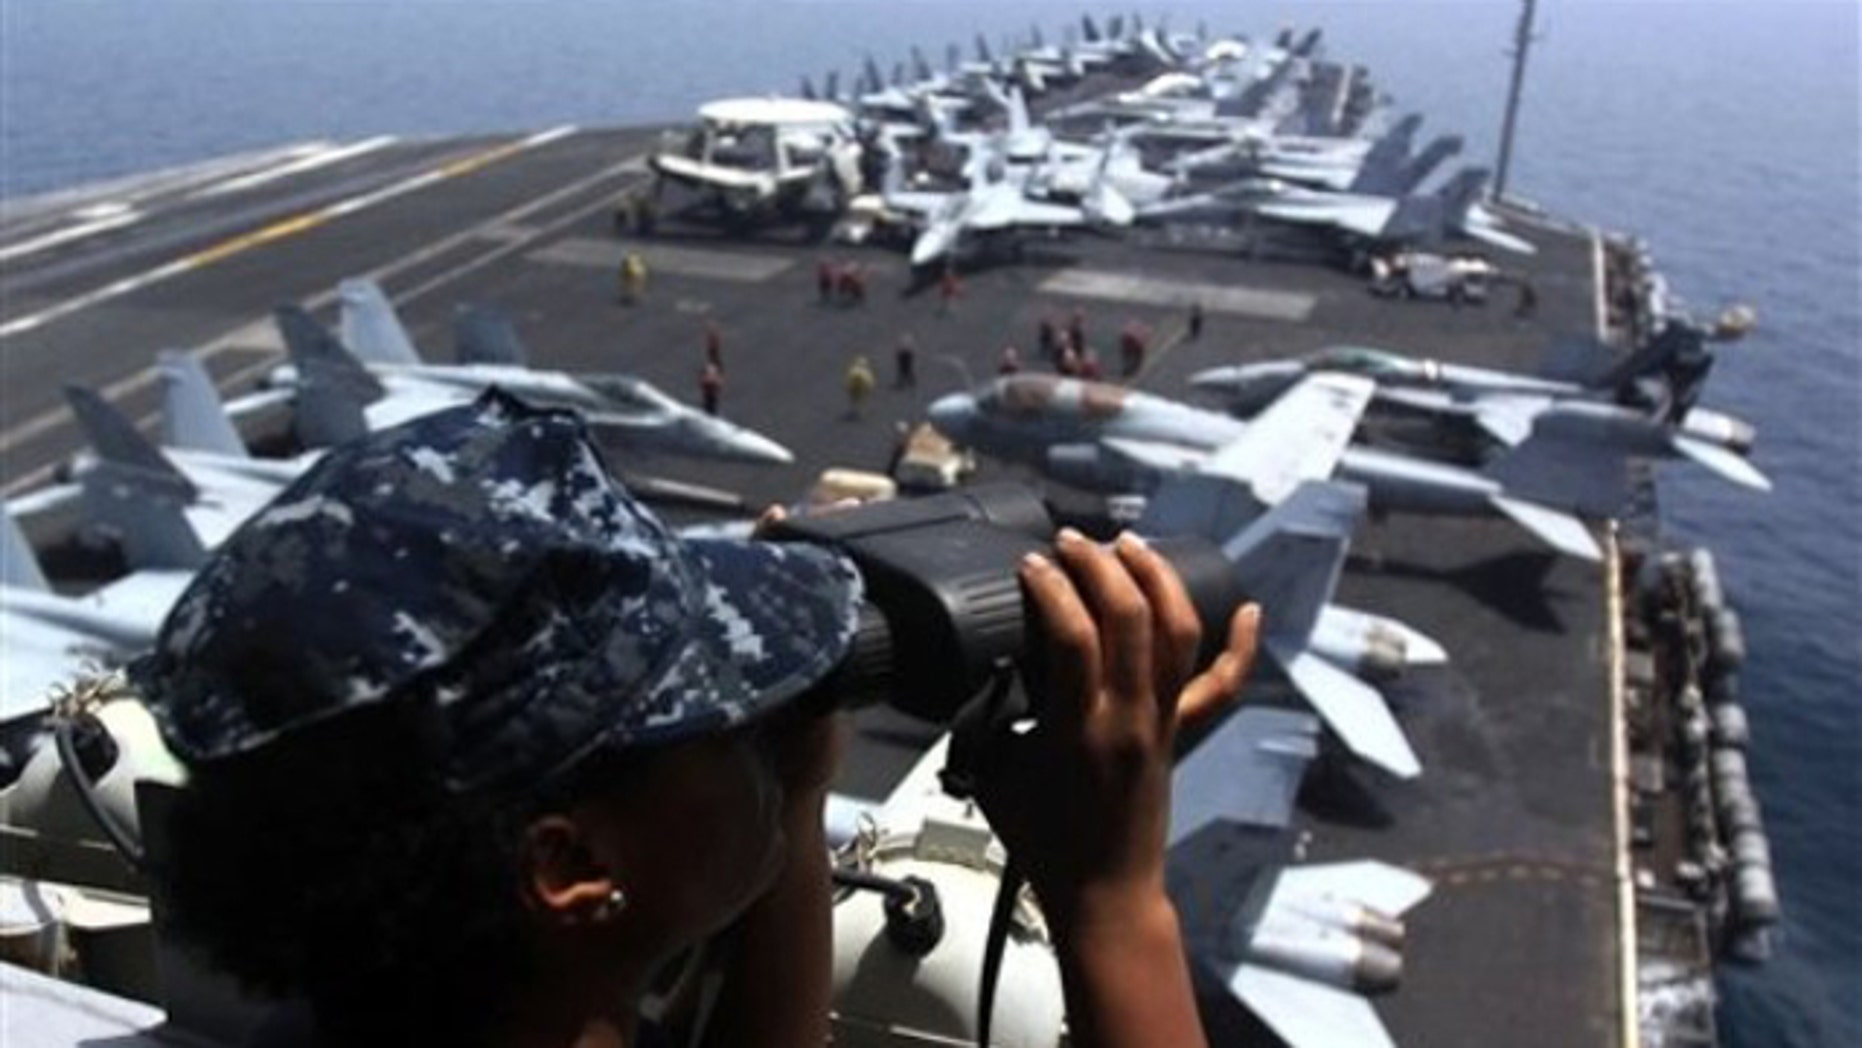 In this June 7 photo, a U.S. Navy sailor peers through binoculars from a lookout tower aboard the USS Dwight D. Eisenhower aircraft carrier in the Persian Gulf. (AP Photo)